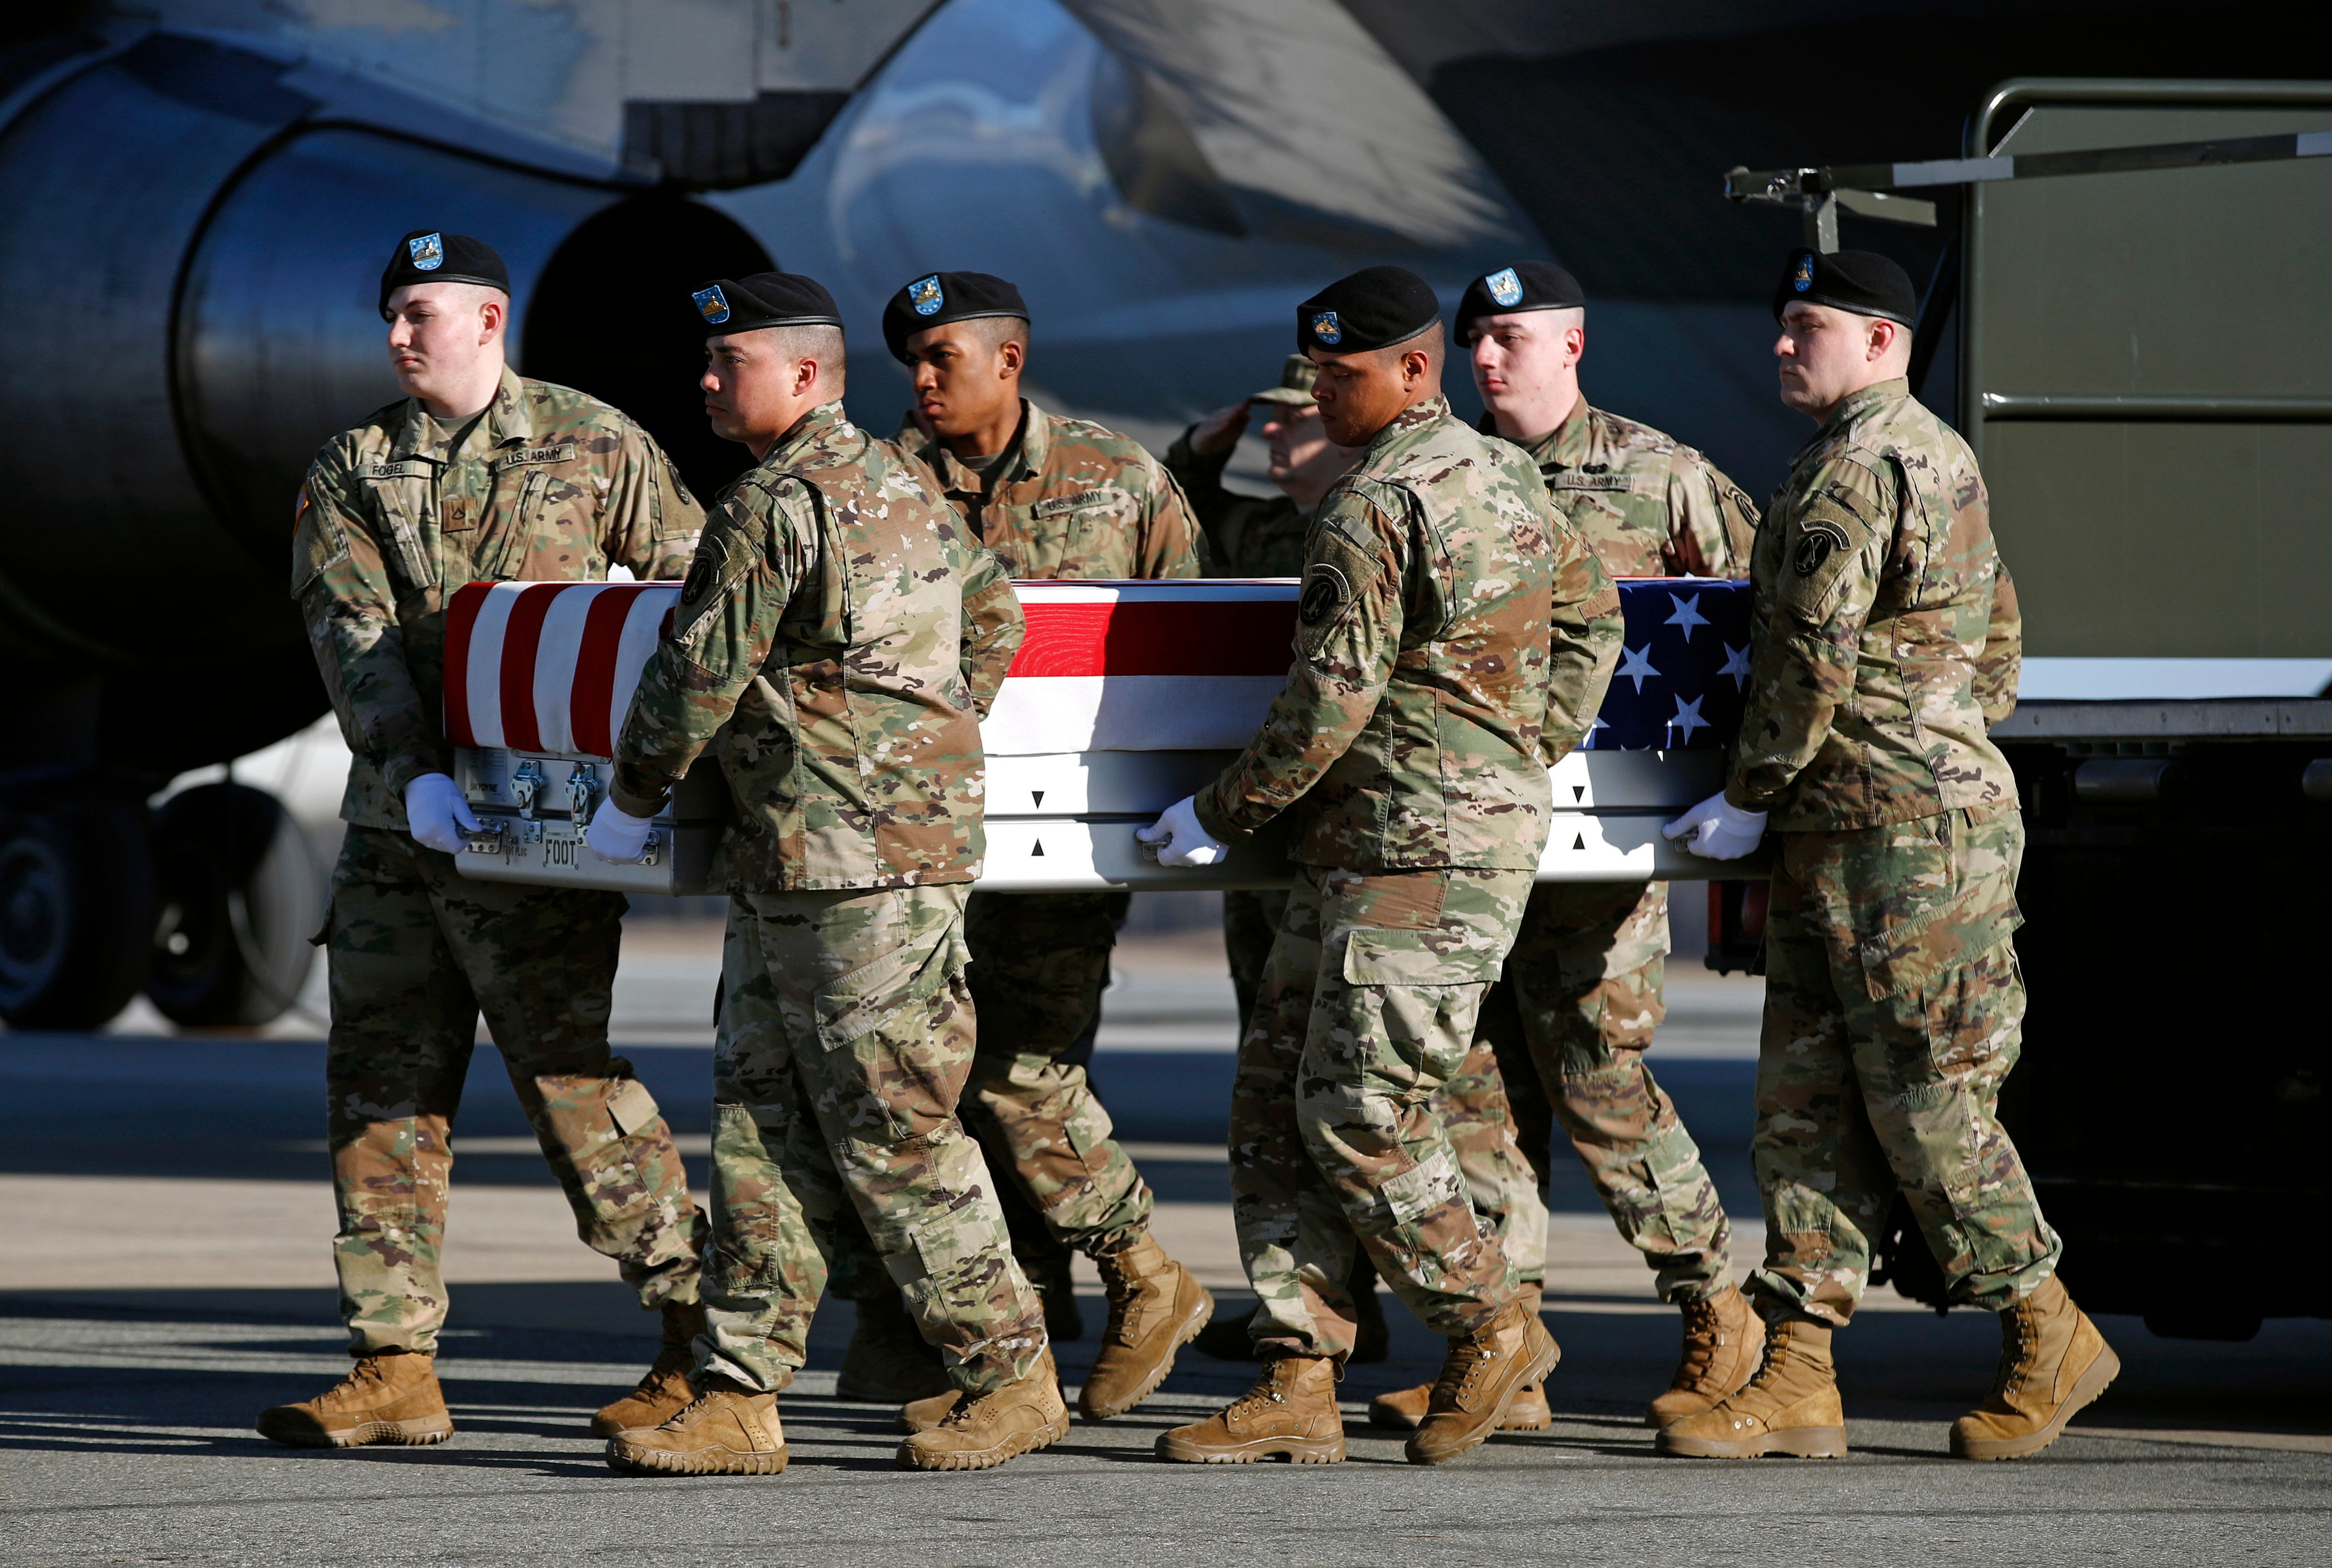 A U.S. Army carry team moves a transfer case containing the remains of Spc. Joseph P. Collette, Sunday, March 24, 2019, at Dover Air Force Base, Del. According to the Department of Defense, Collette, of Lancaster, Ohio, was killed March 22 while involved in combat operations in Kunduz Province, Afghanistan. (AP Photo/Patrick Semansky)